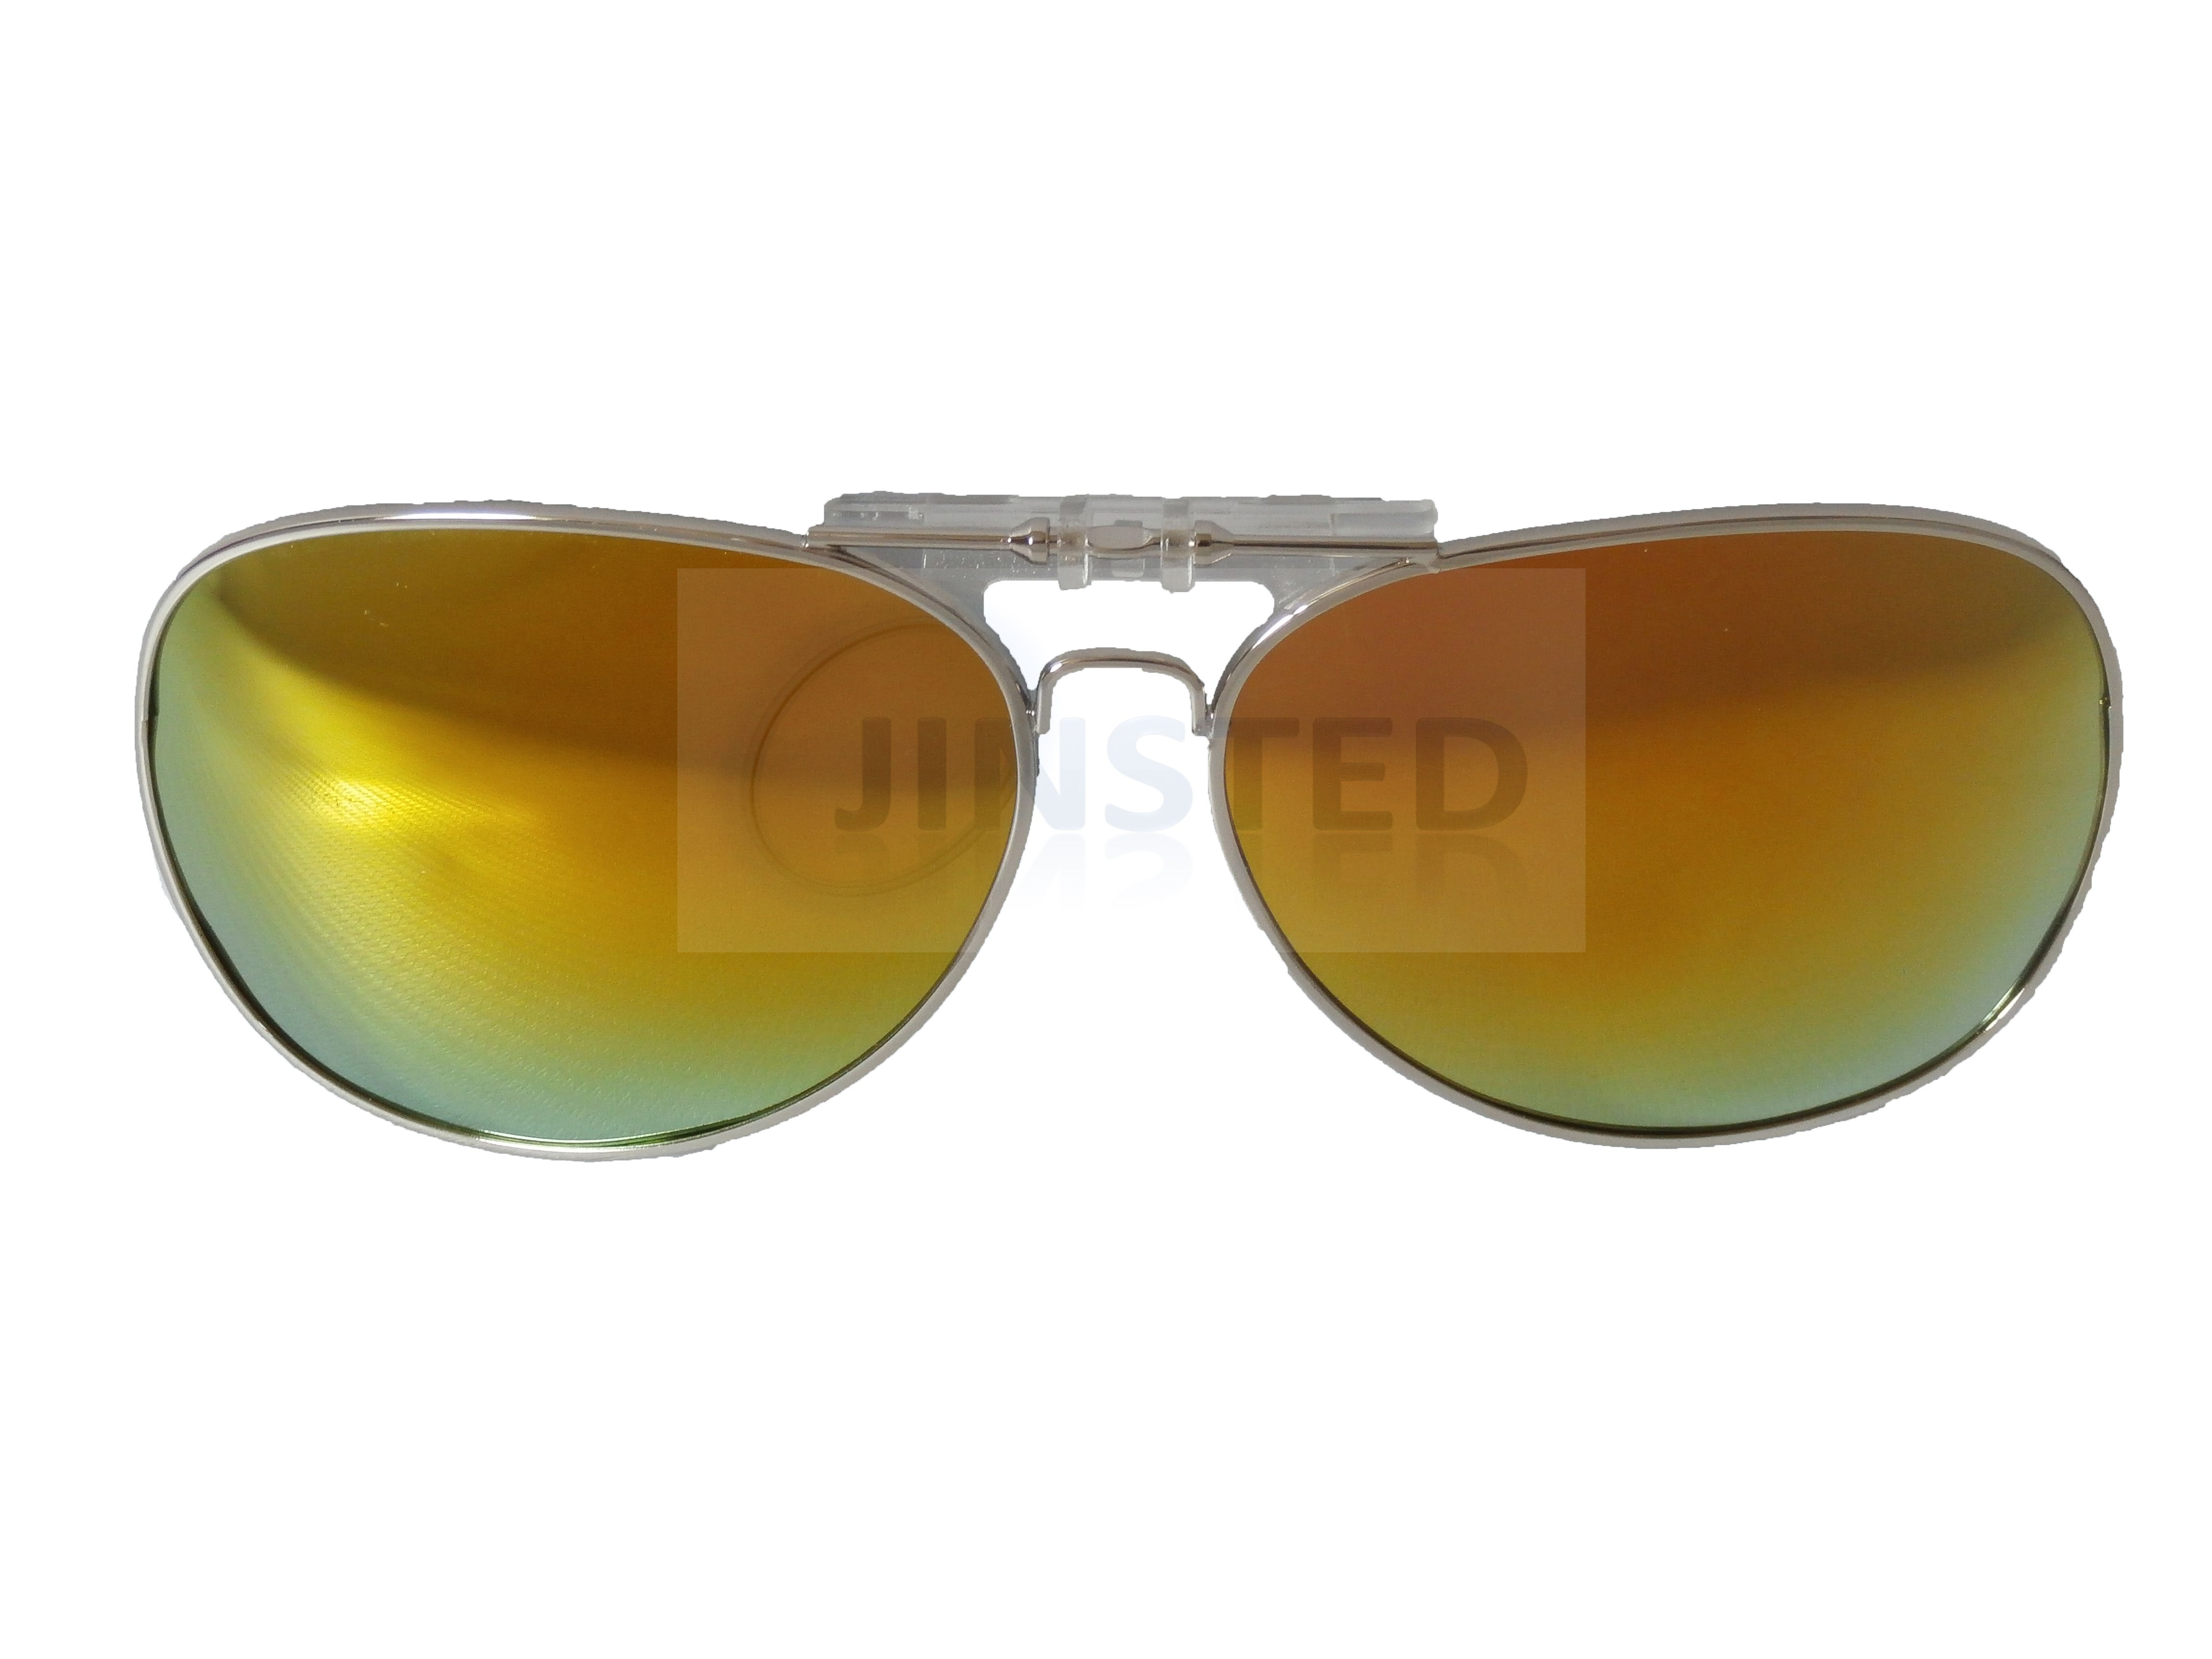 f7e02d5265 THE CLIP ON SUNGLASSES RANGE IS A GREAT ADDITION FOR ANYONE WHO WEARS  GLASSES. THESE